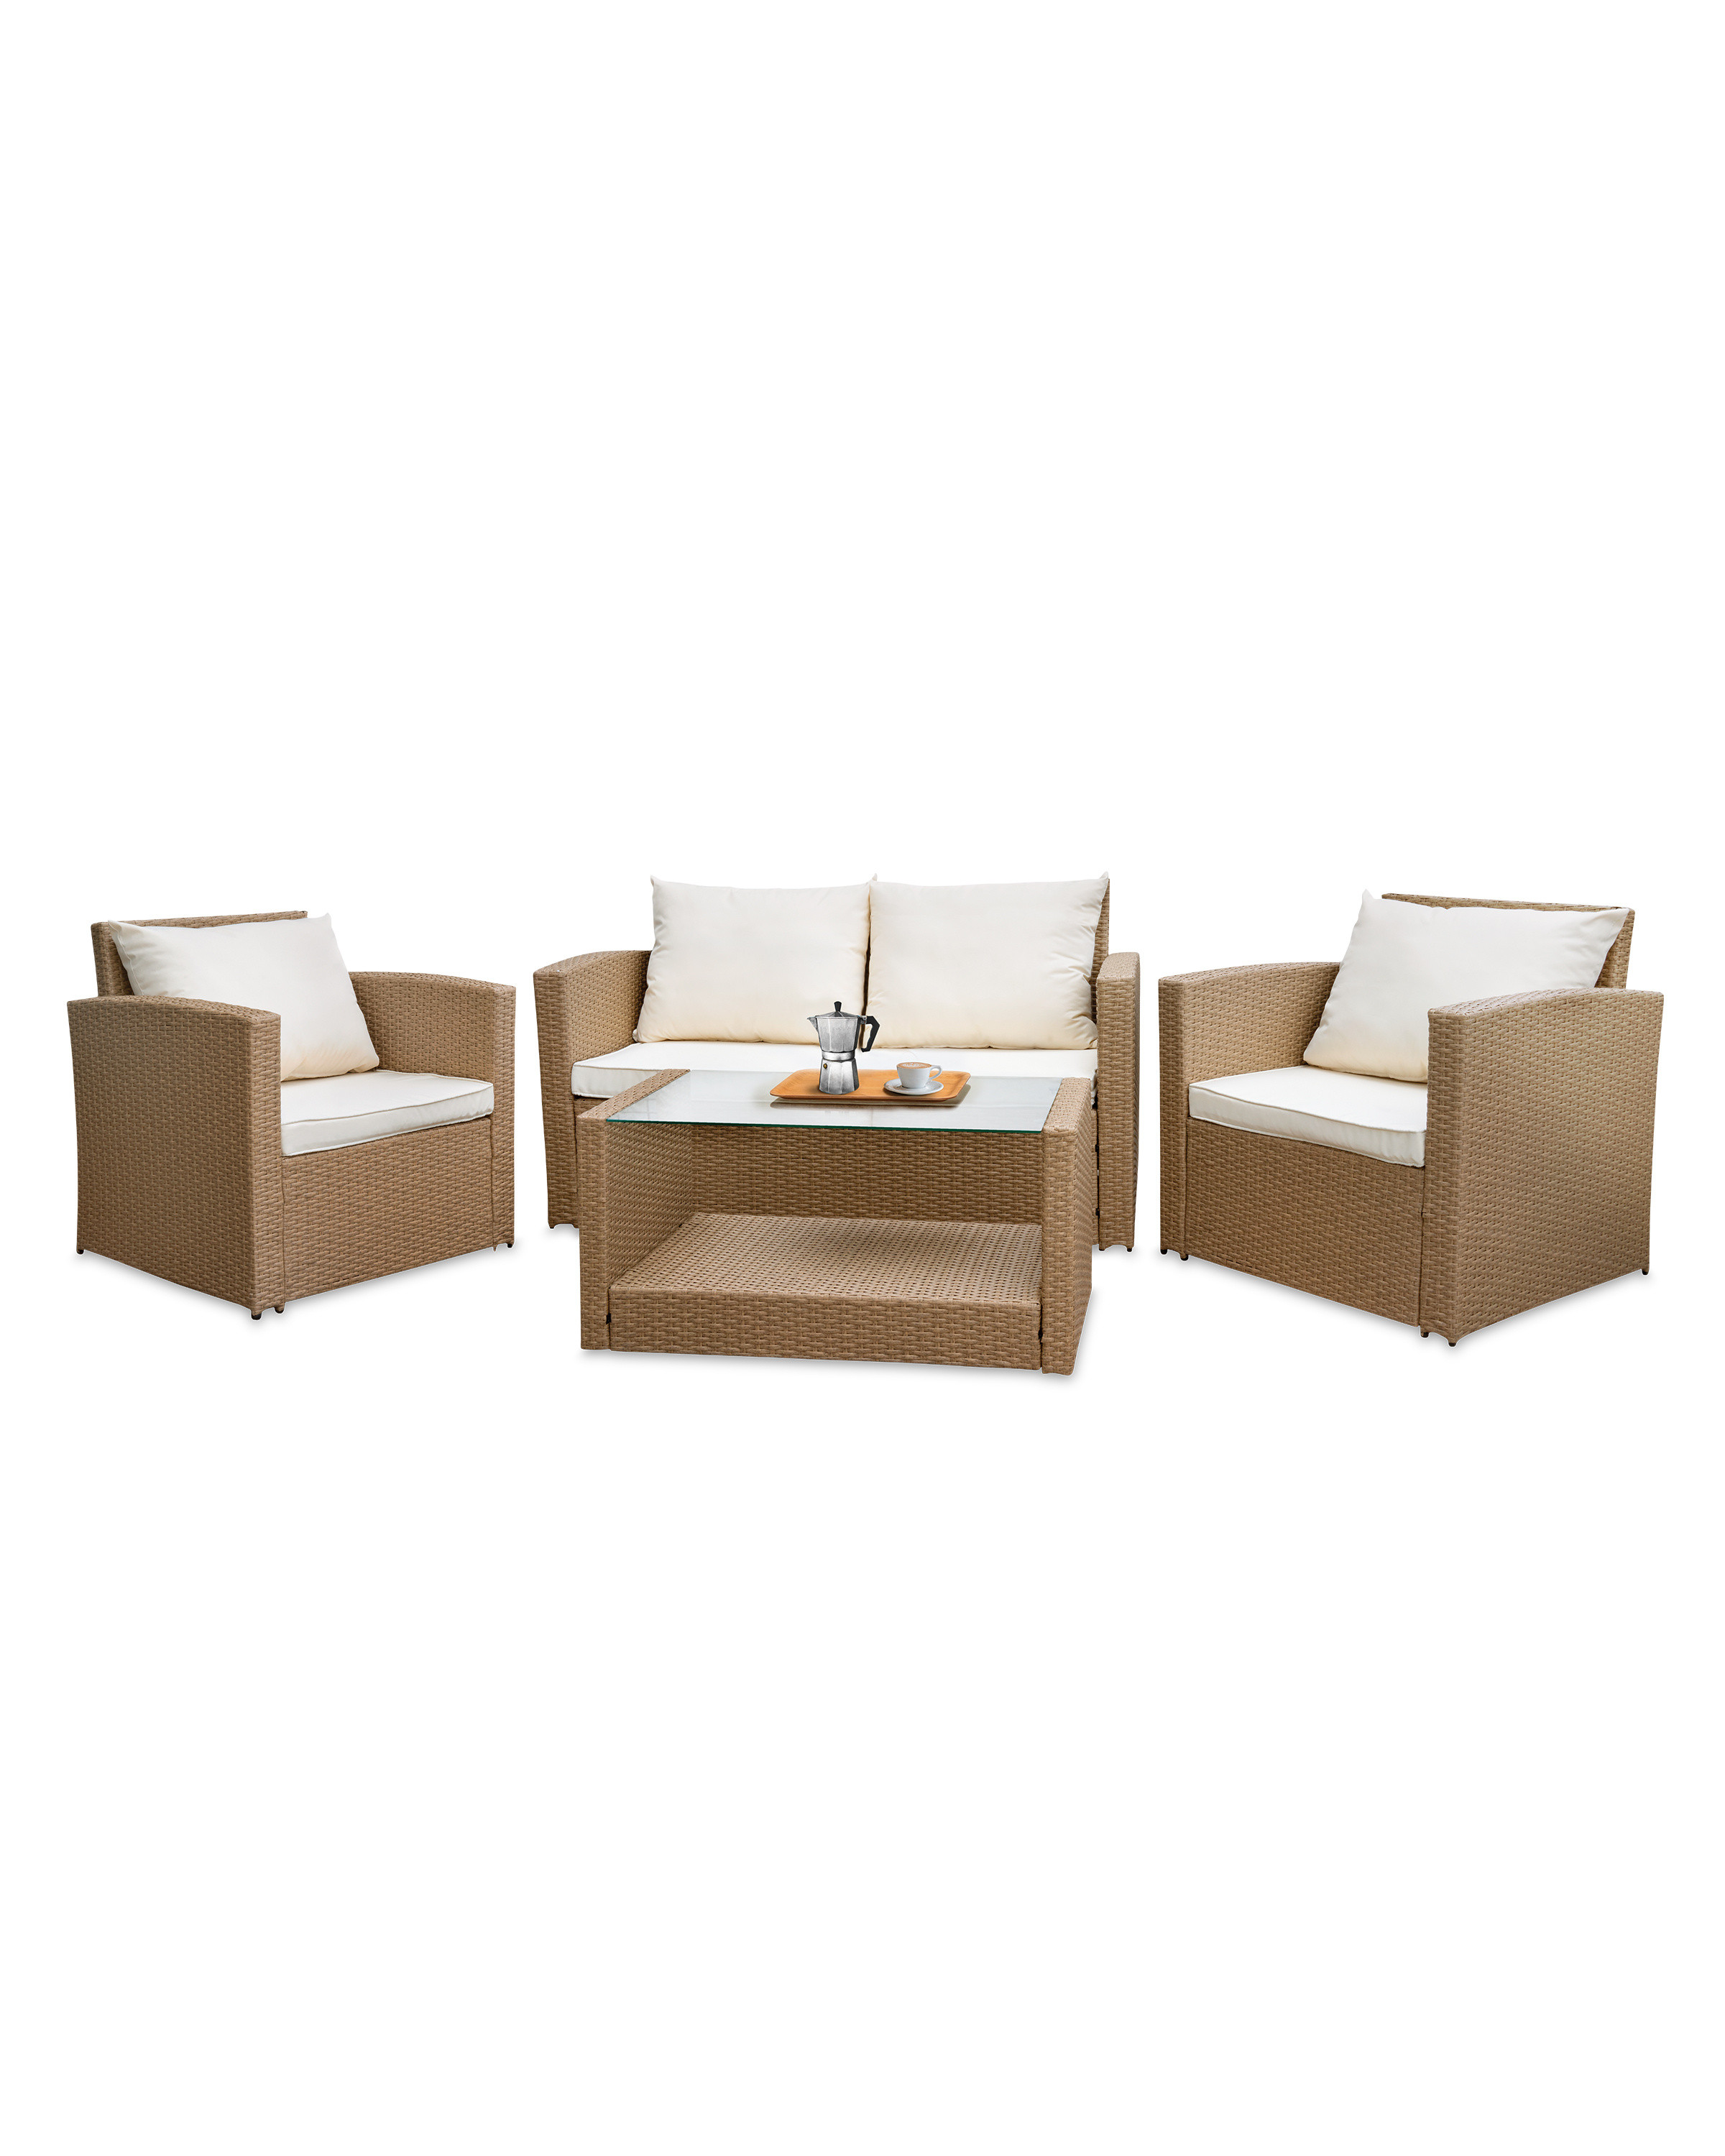 Sensational Beige Rattan Effect Garden Set Home Interior And Landscaping Synyenasavecom